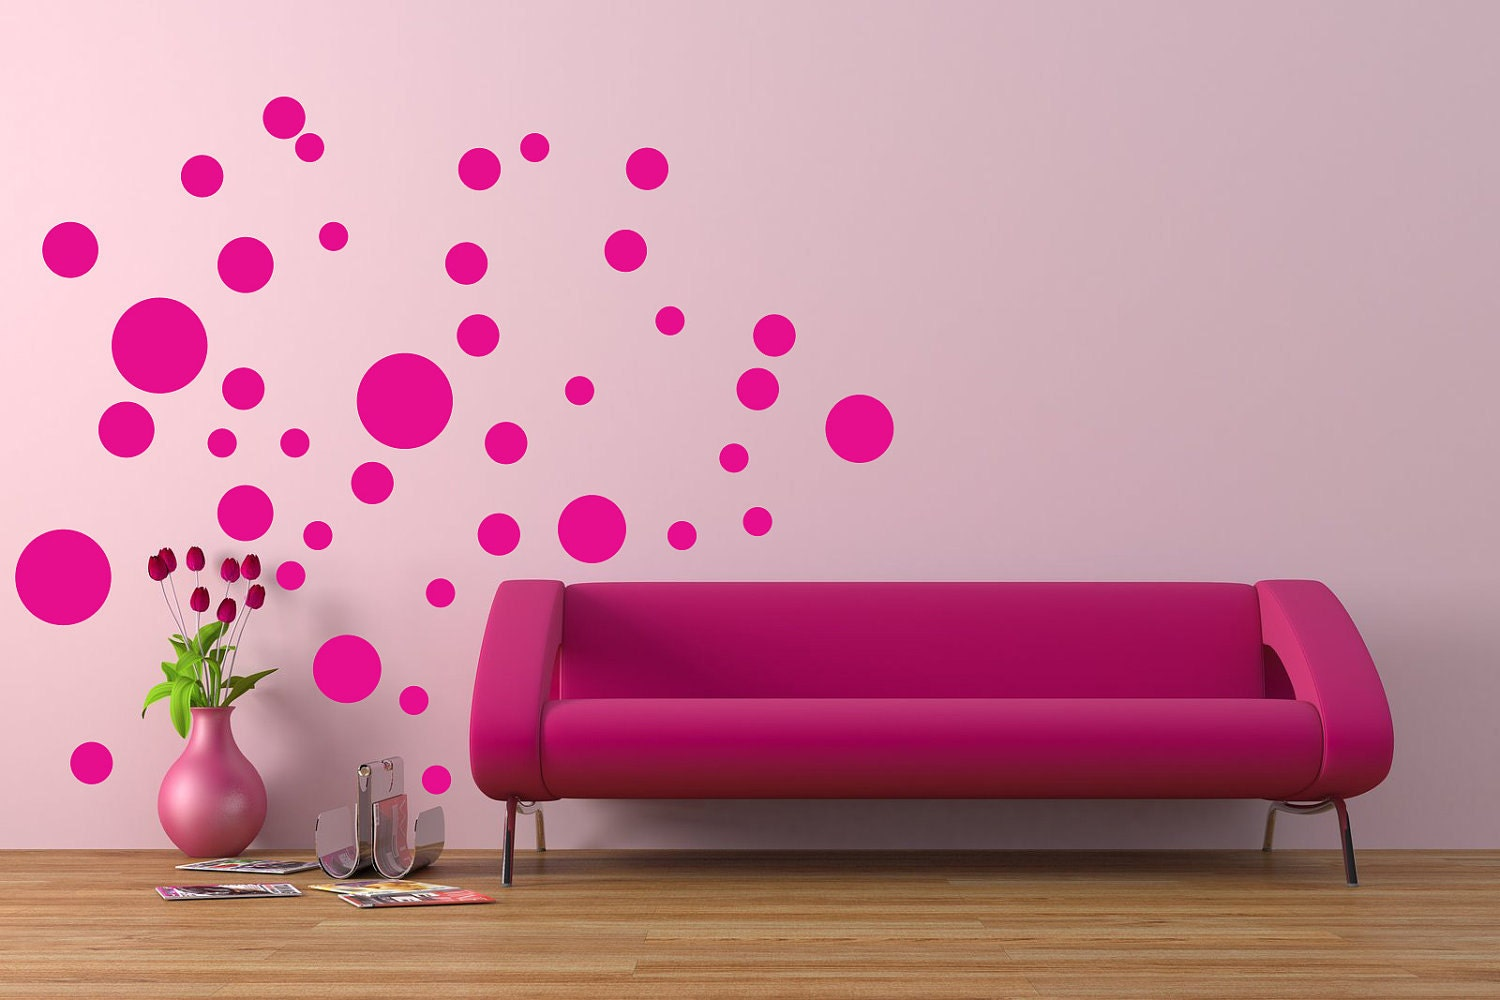 40 polka dots wall decals vinyl wall art wall decals. Black Bedroom Furniture Sets. Home Design Ideas